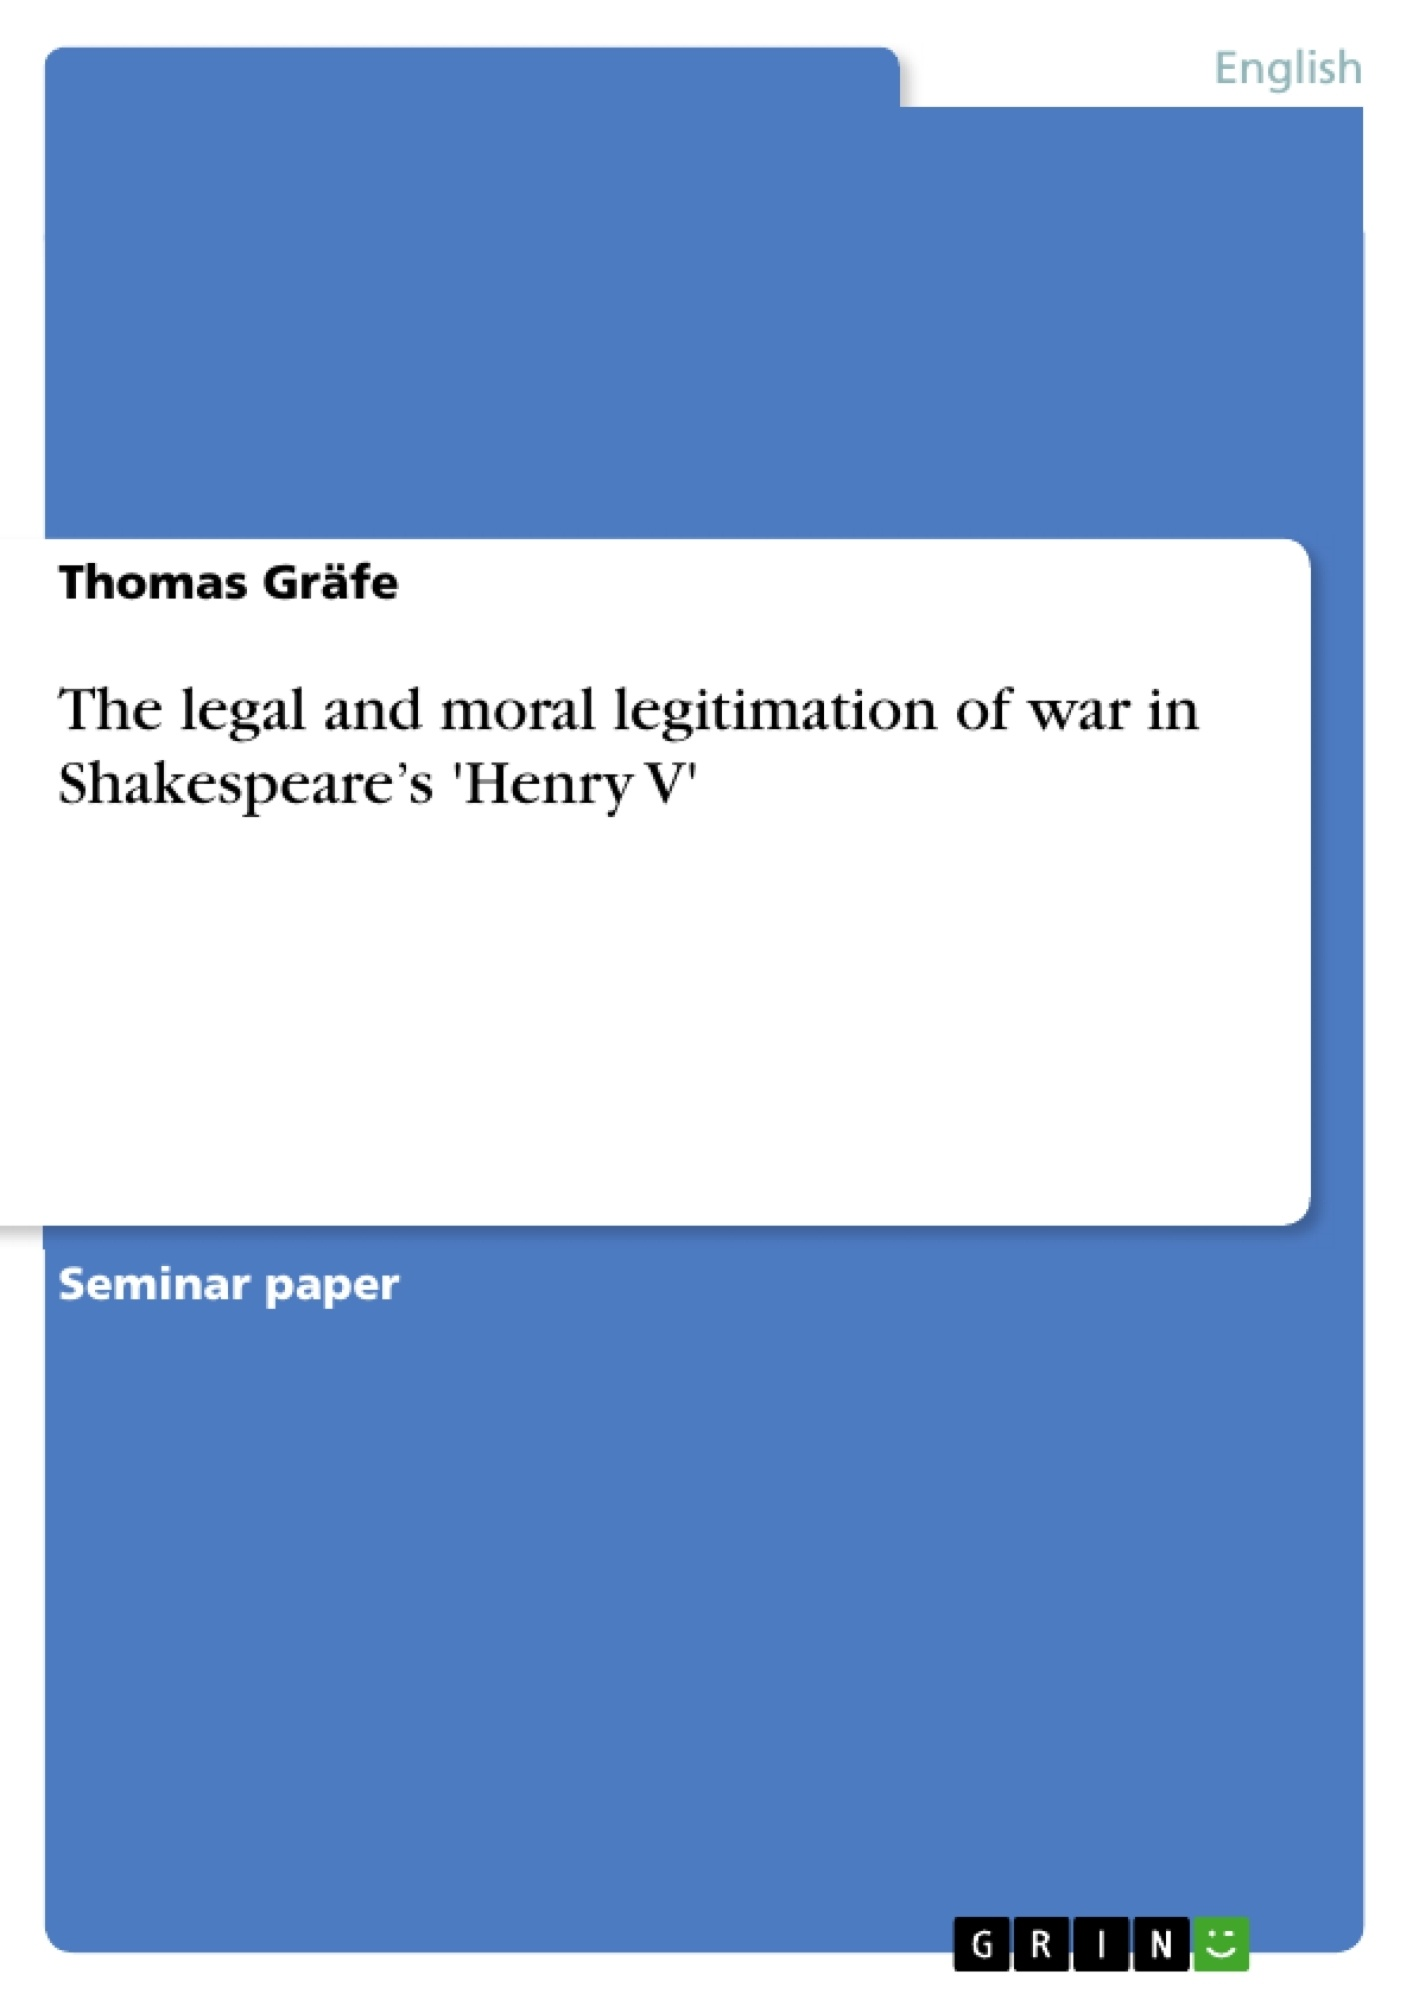 Title: The legal and moral legitimation of war in Shakespeare's 'Henry V'